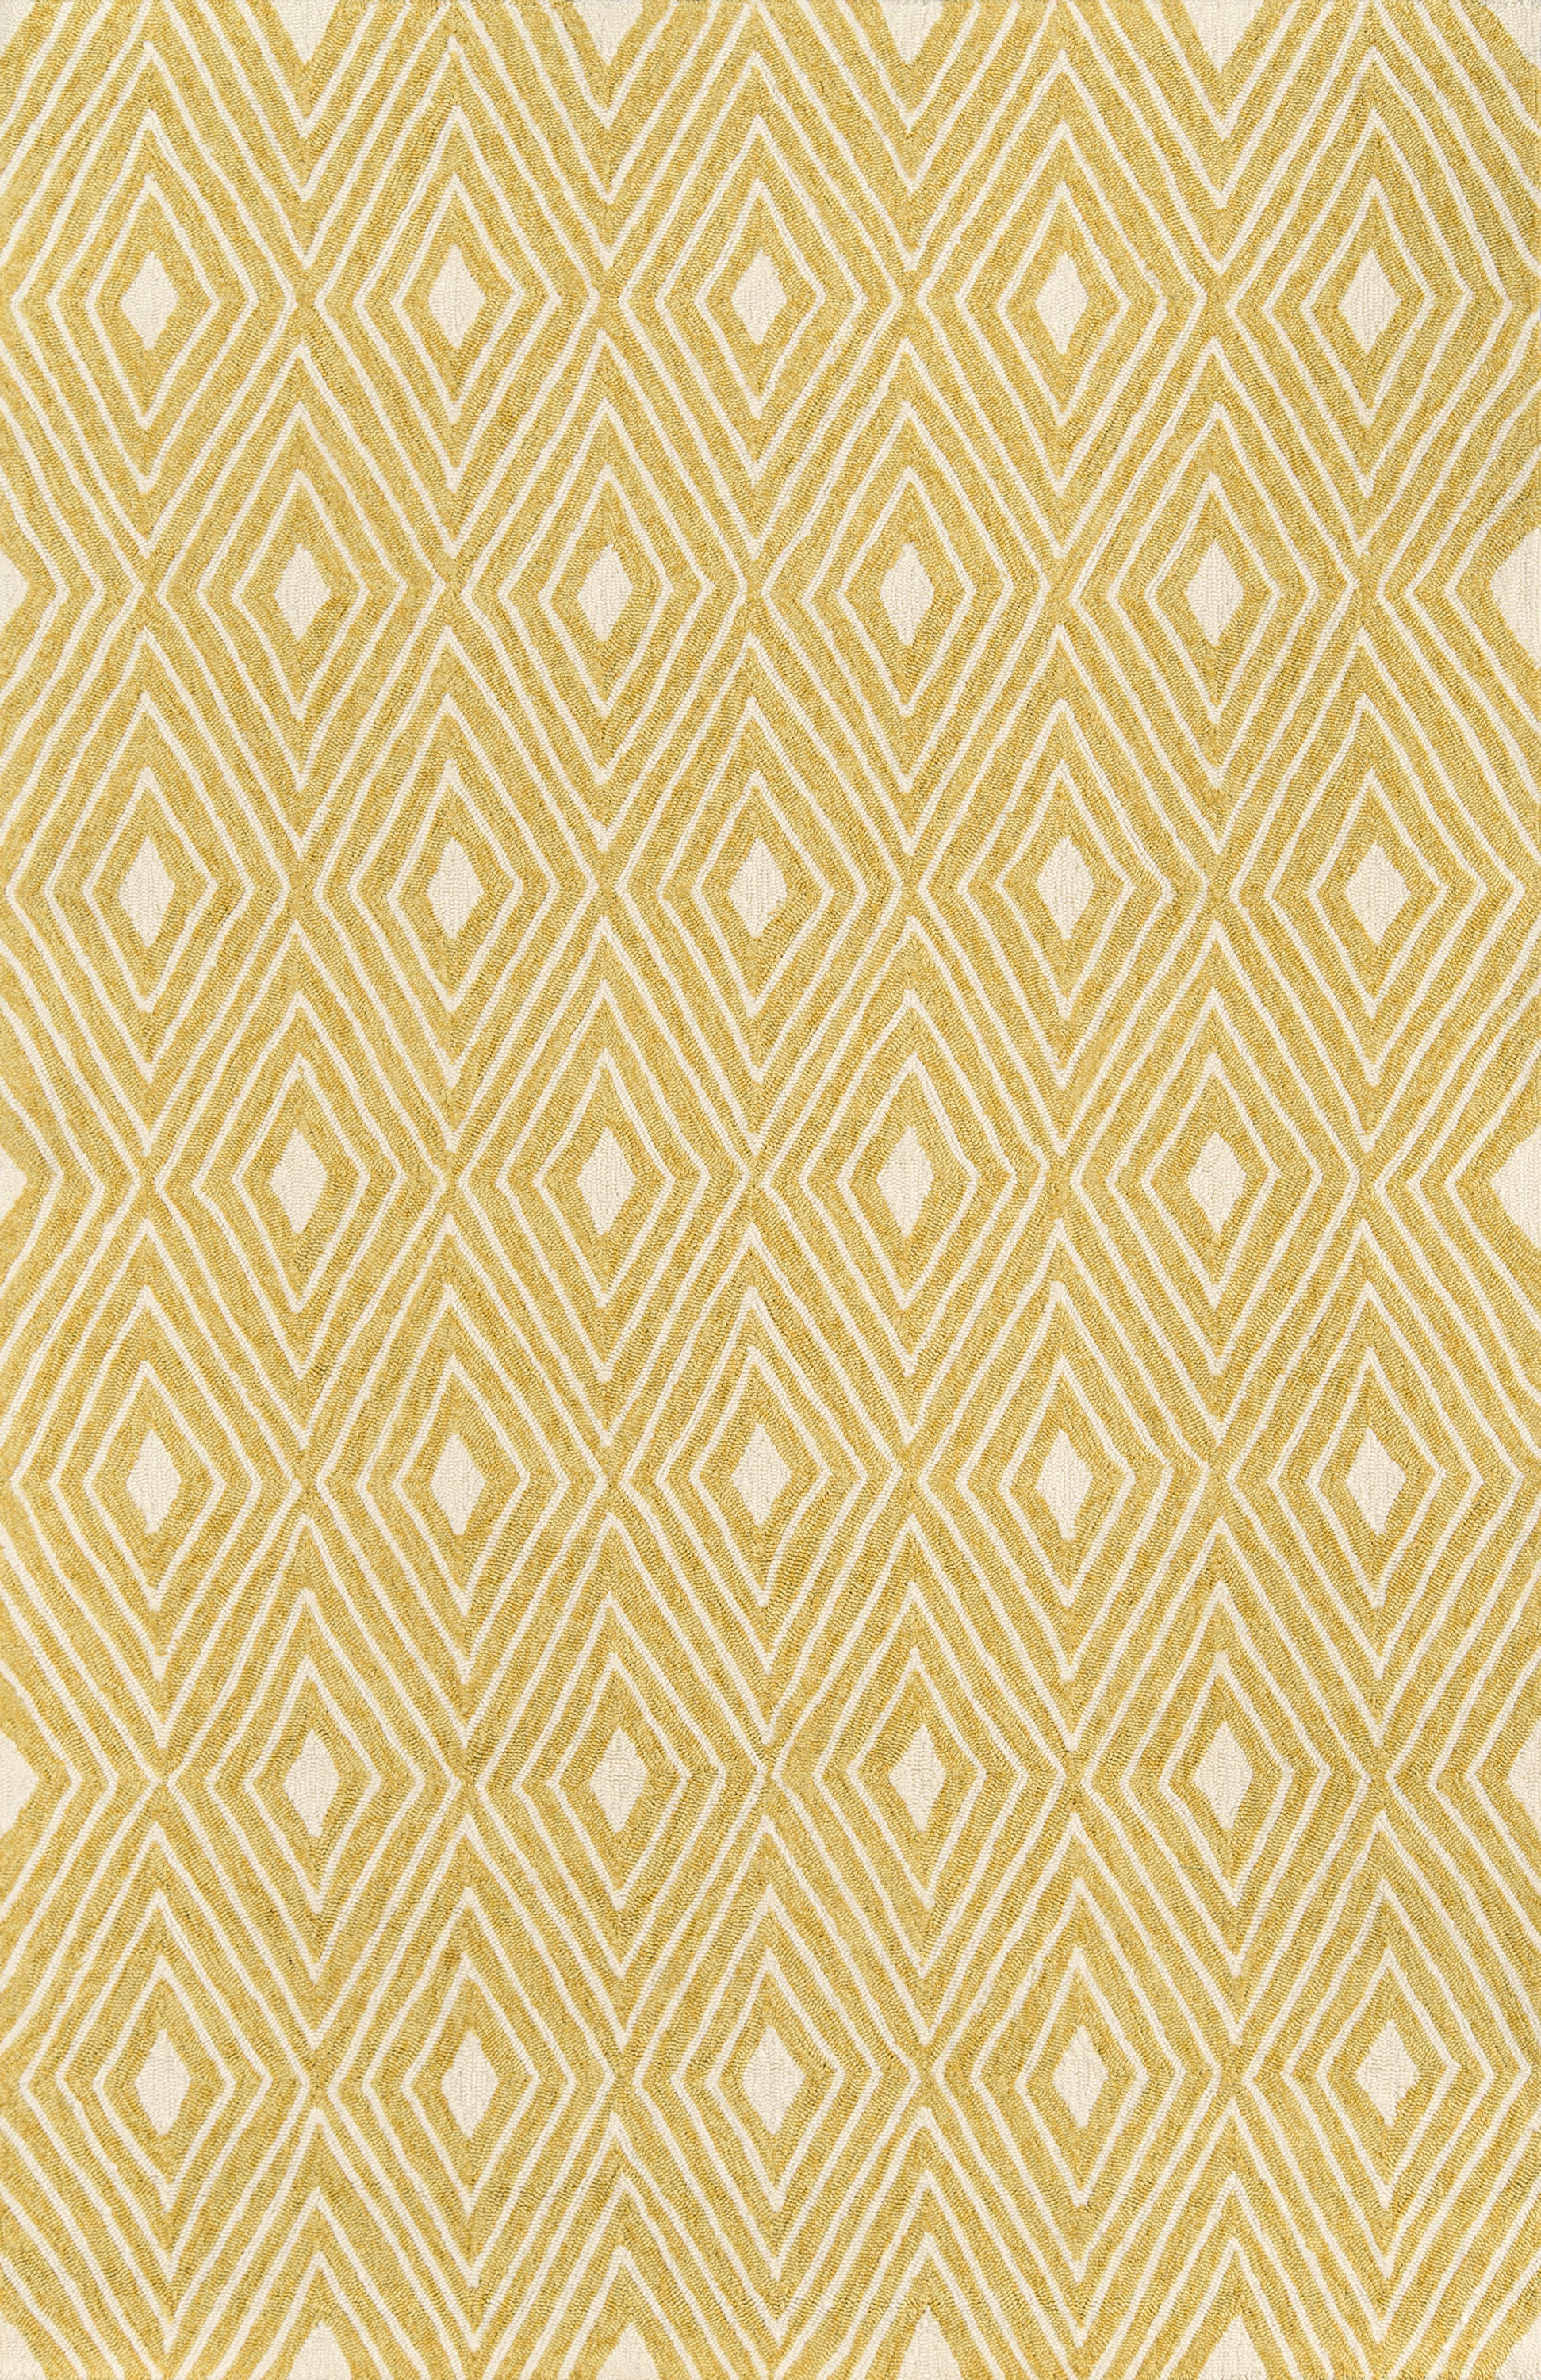 Rectangle, Round 2x3 Yellow Diamond Hand Hooked Synthetics Contemporary recommended for Bedroom, Bathroom, Outdoor, Dining Room, Office, Hallway, Living Room